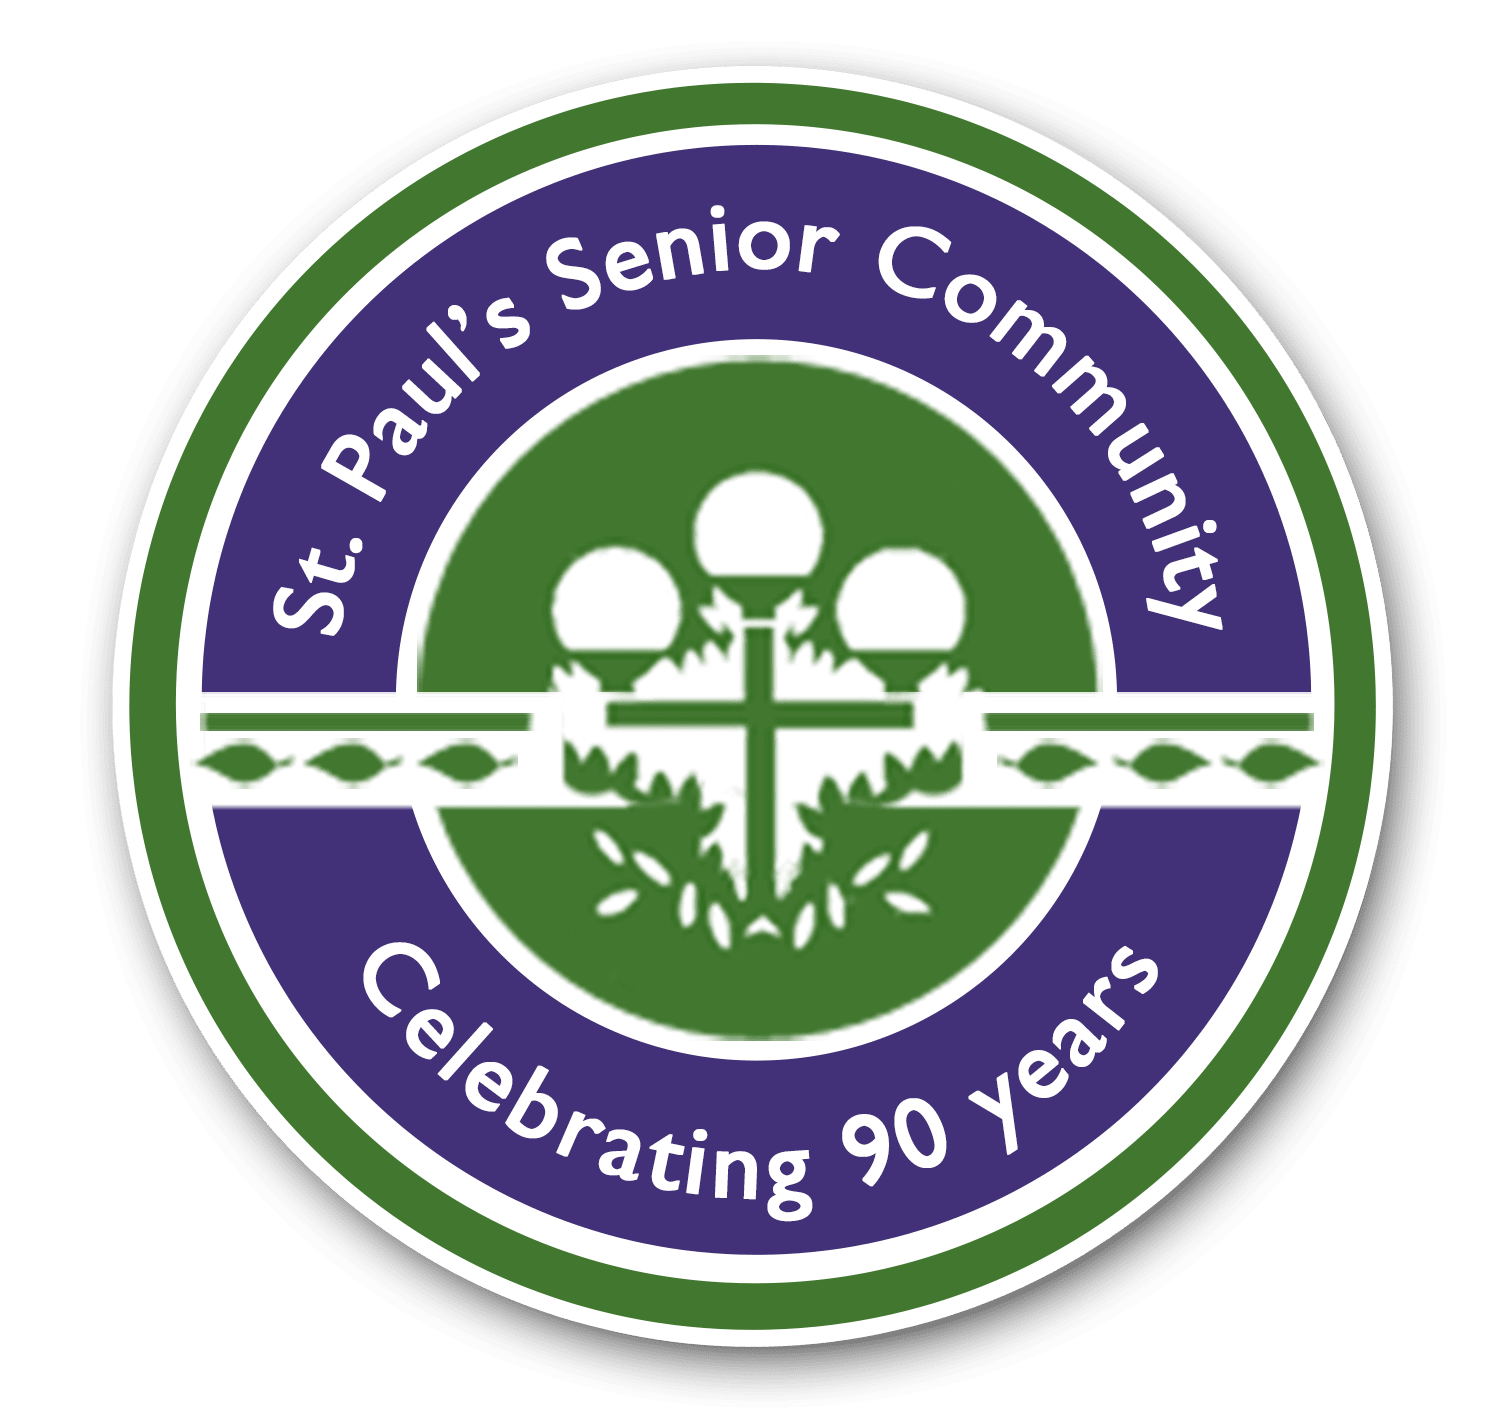 St. Paul's Senior Community